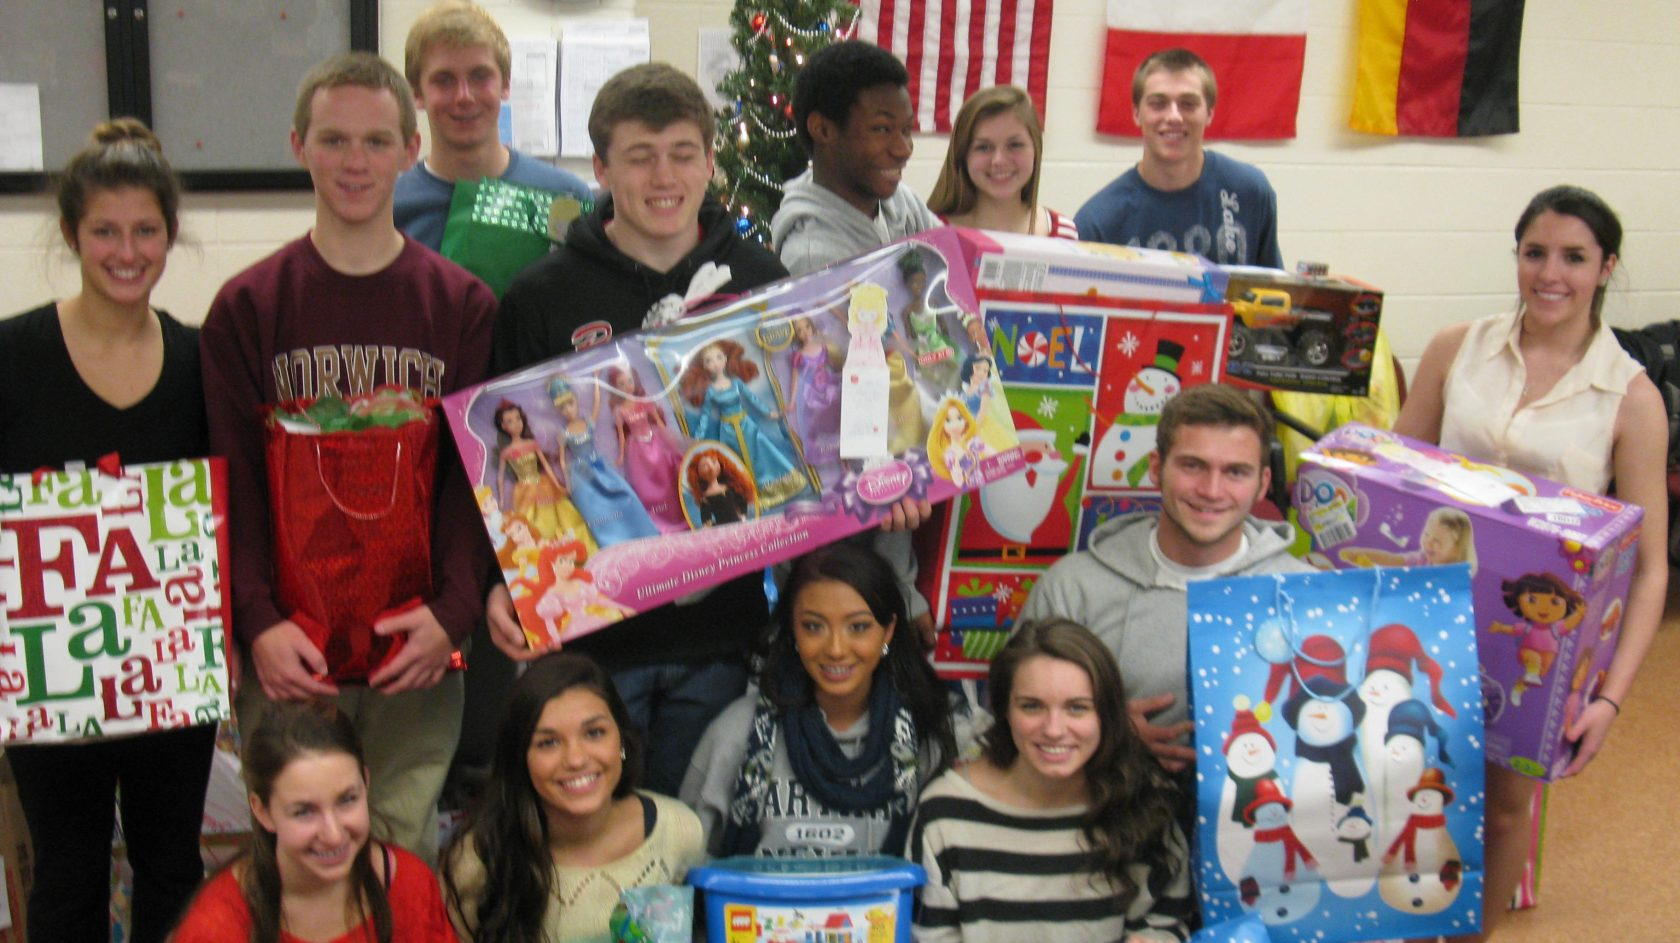 Every year the WHS Student Council works with the Westfield Salvation Army to set-up a Giving Tree in the main office.  The Salvation Army supplied the school with 100+ requests for Holiday presents for the needy, and students staff filled the requests and placed them under the tree.  (Photo submitted)